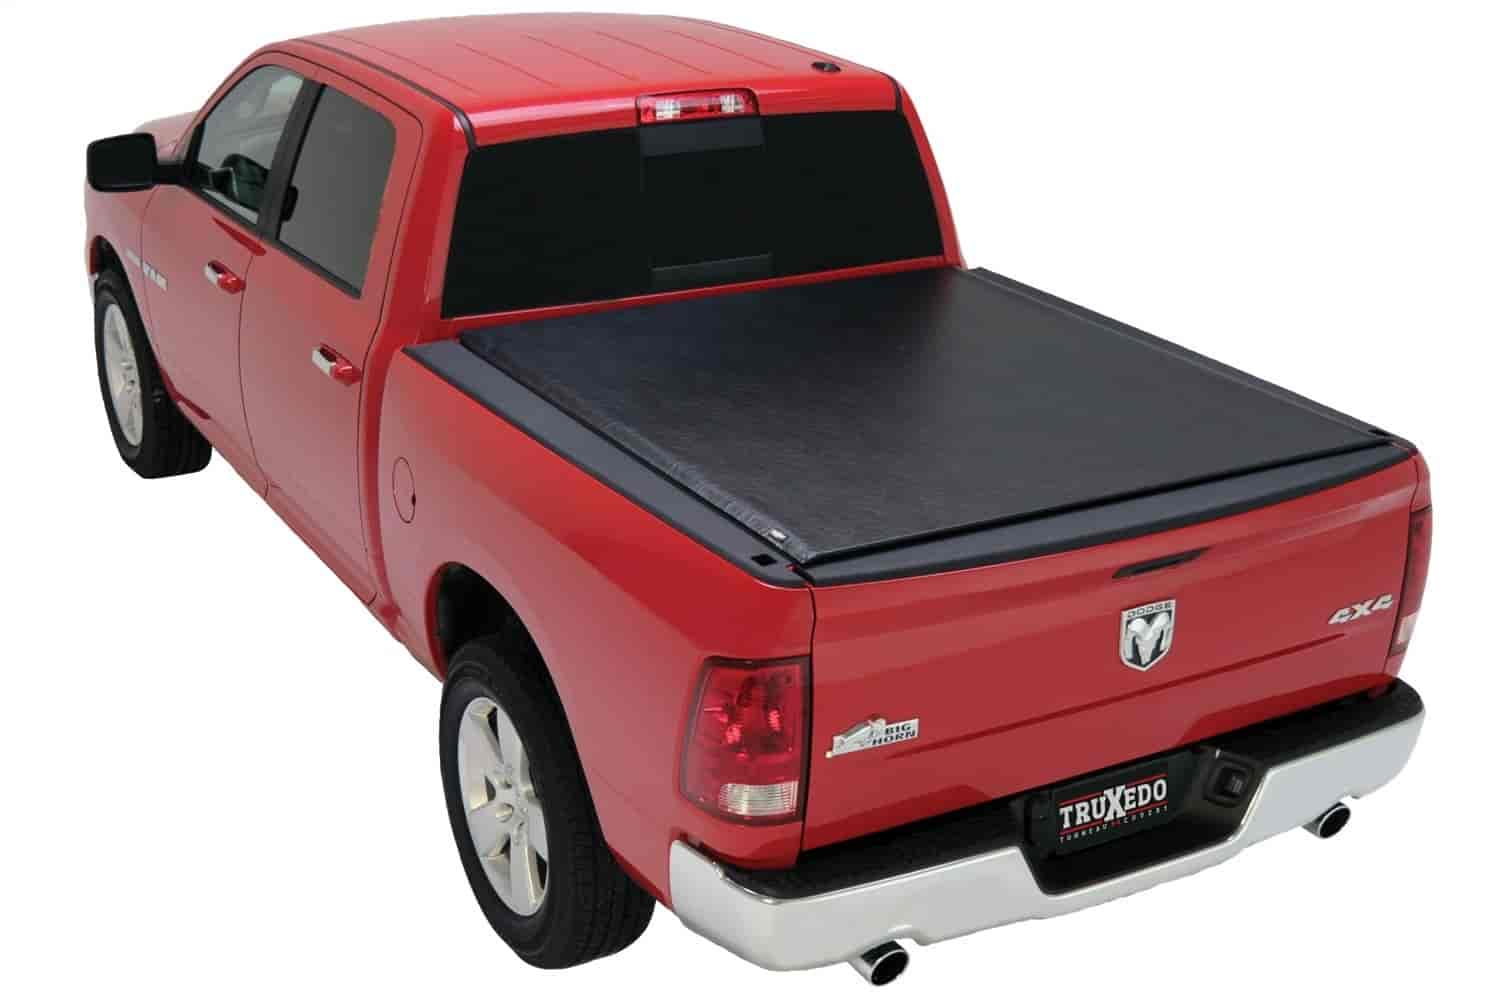 Truxedo 592601 - Truxedo Lo Pro QT Soft Roll-Up Tonneau Cover